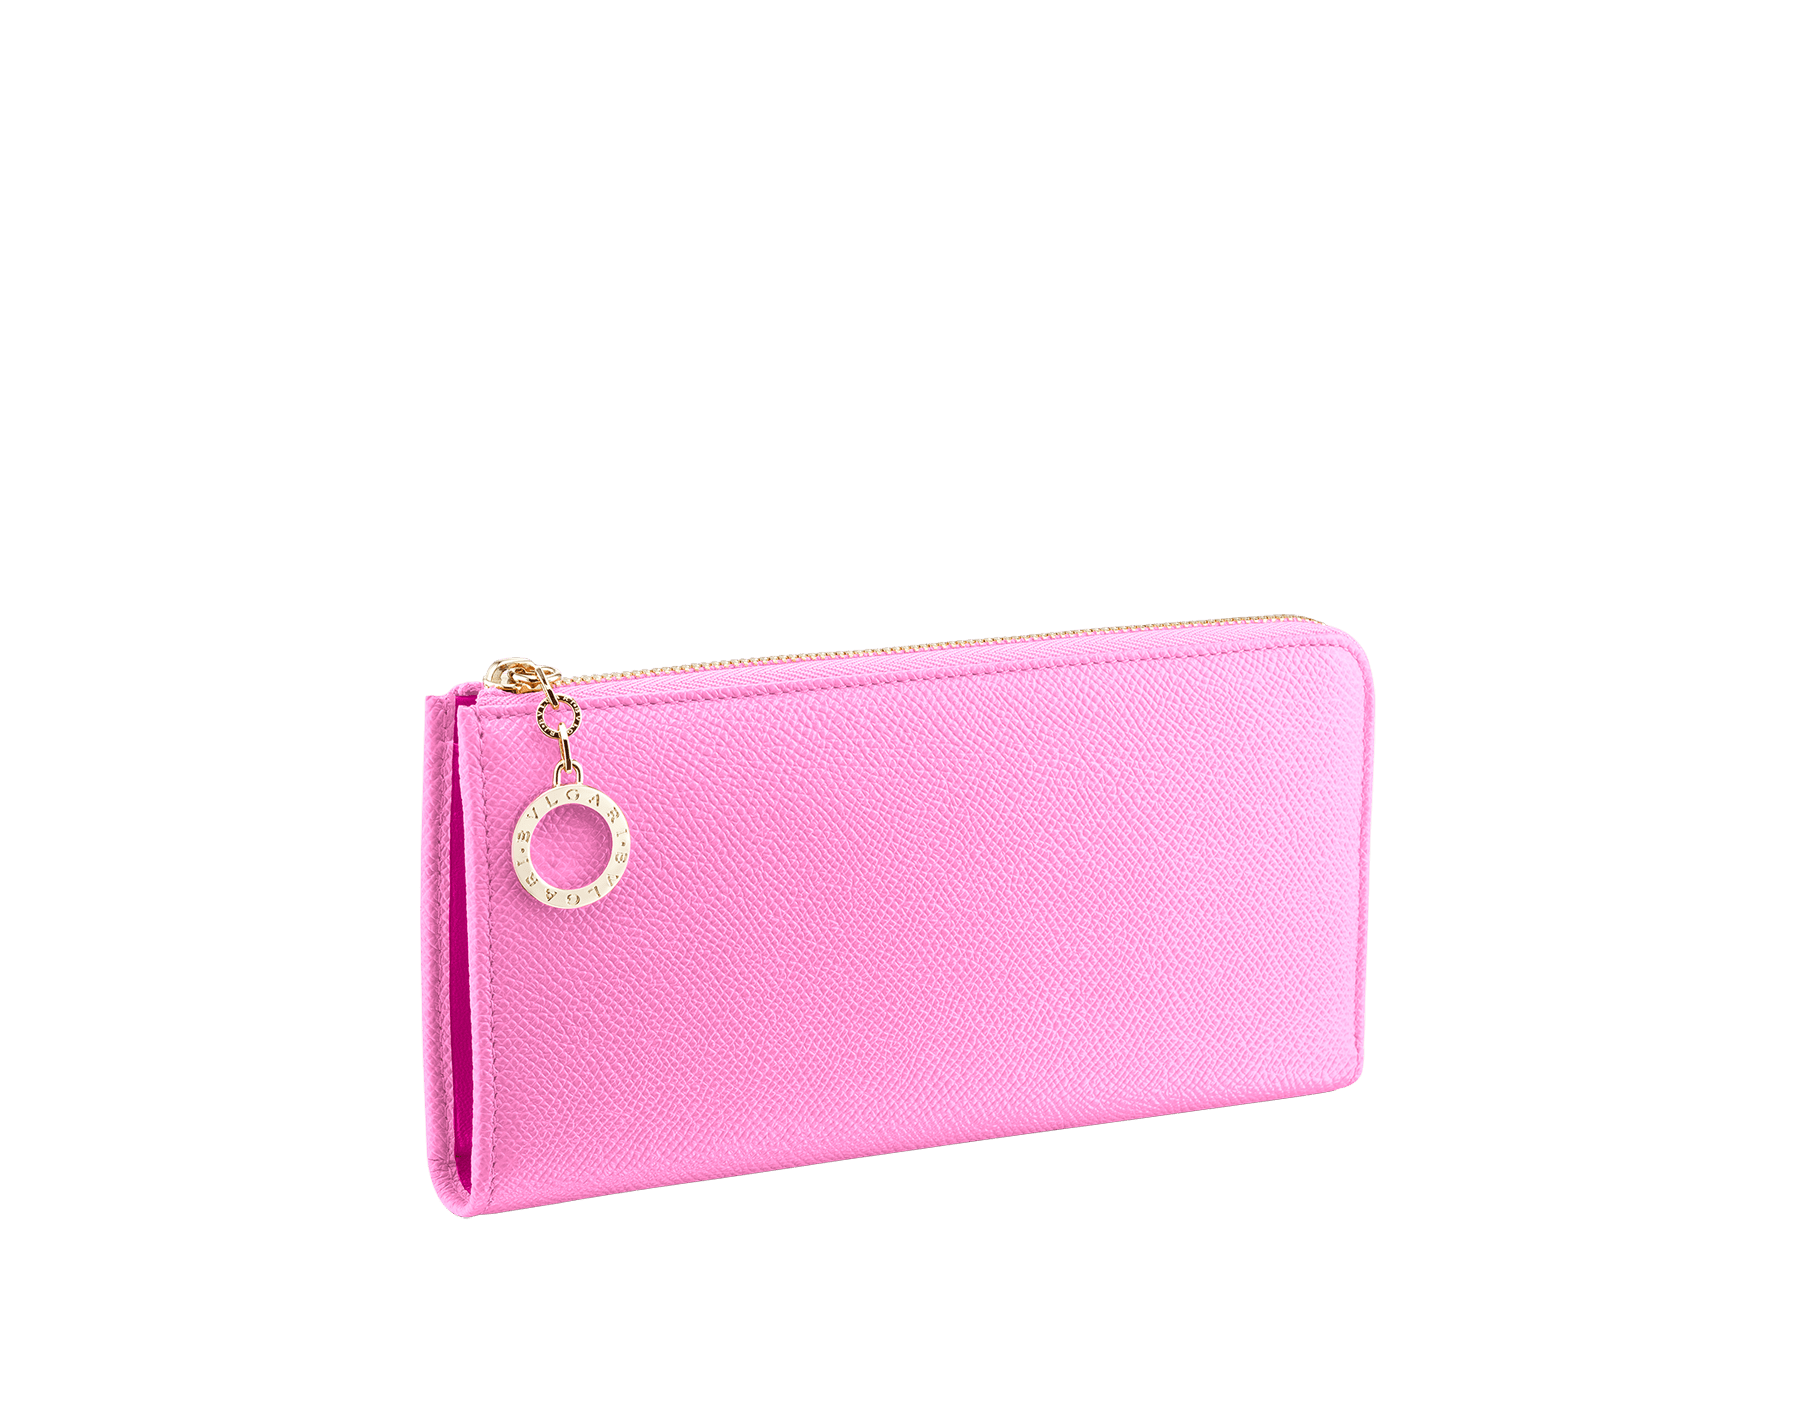 """BVLGARI BVLGARI"" large L-shaped zipped wallet in taffy quartz bright grain calf leather and berry tourmaline nappa leather. Iconic logo zip puller in light gold plated brass. 579-WLT-MZP-SLIM-La image 1"